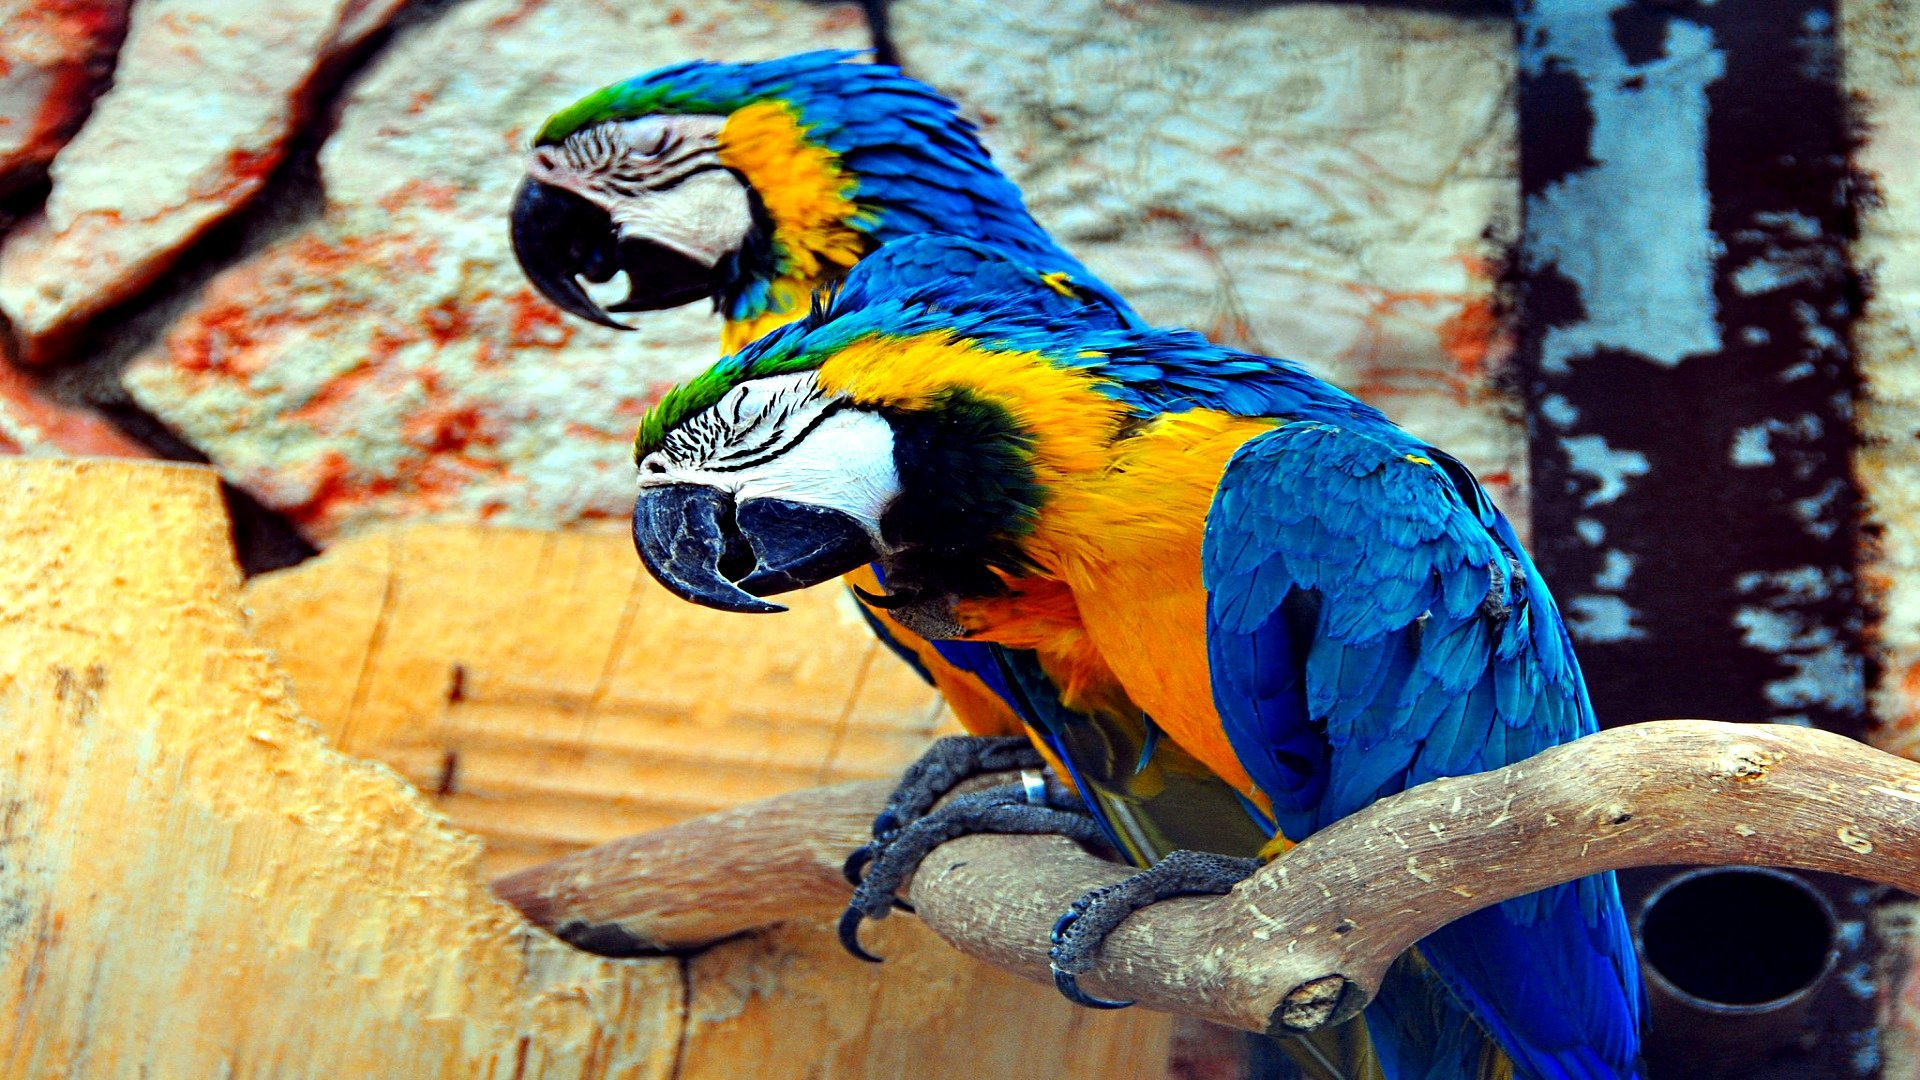 Awesome Macaw free wallpaper ID:46489 for hd 1920x1080 desktop